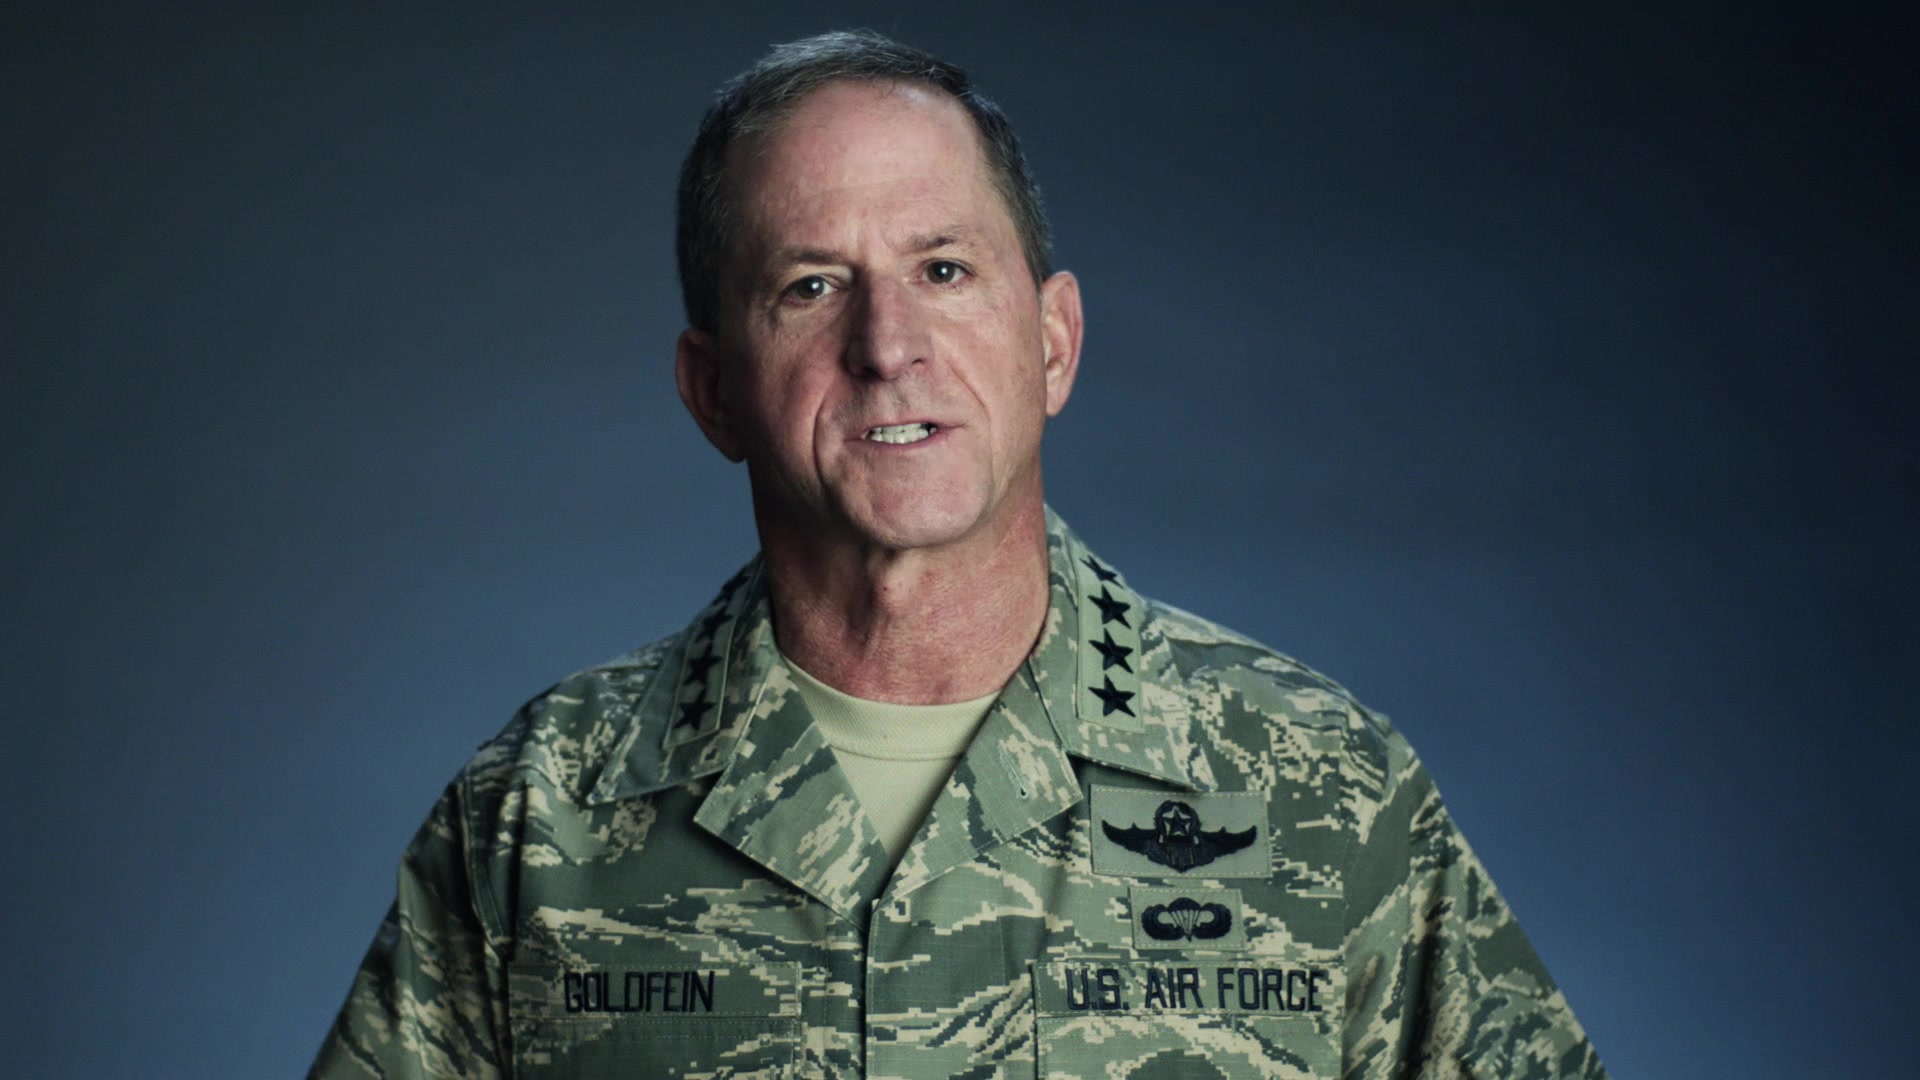 Gen. David Goldfein, Air Force Chief of Staff, discusses the Profession of Arms Center of Excellence's Enhancing Human Capital presentation and how it will inspire you to bring out the best version of yourself.